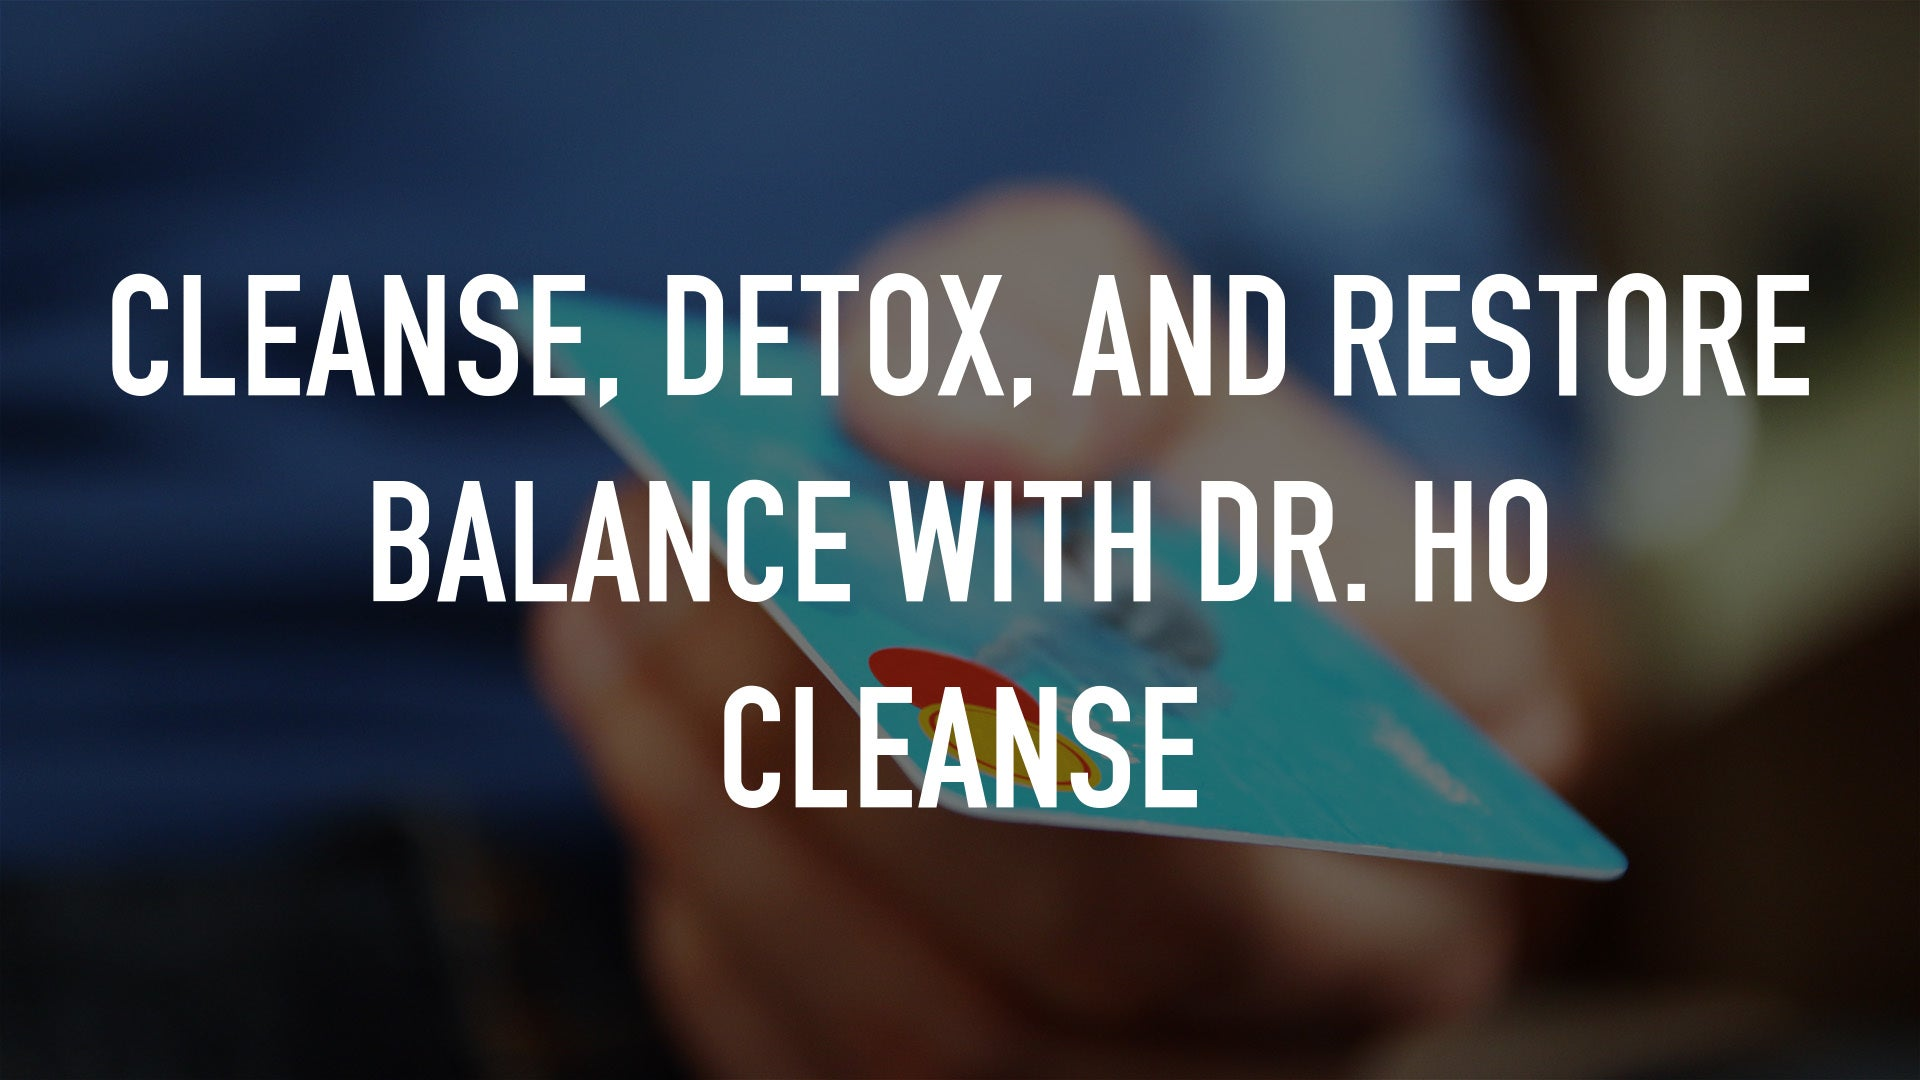 Cleanse, Detox, and Restore Balance with Dr. Ho Cleanse